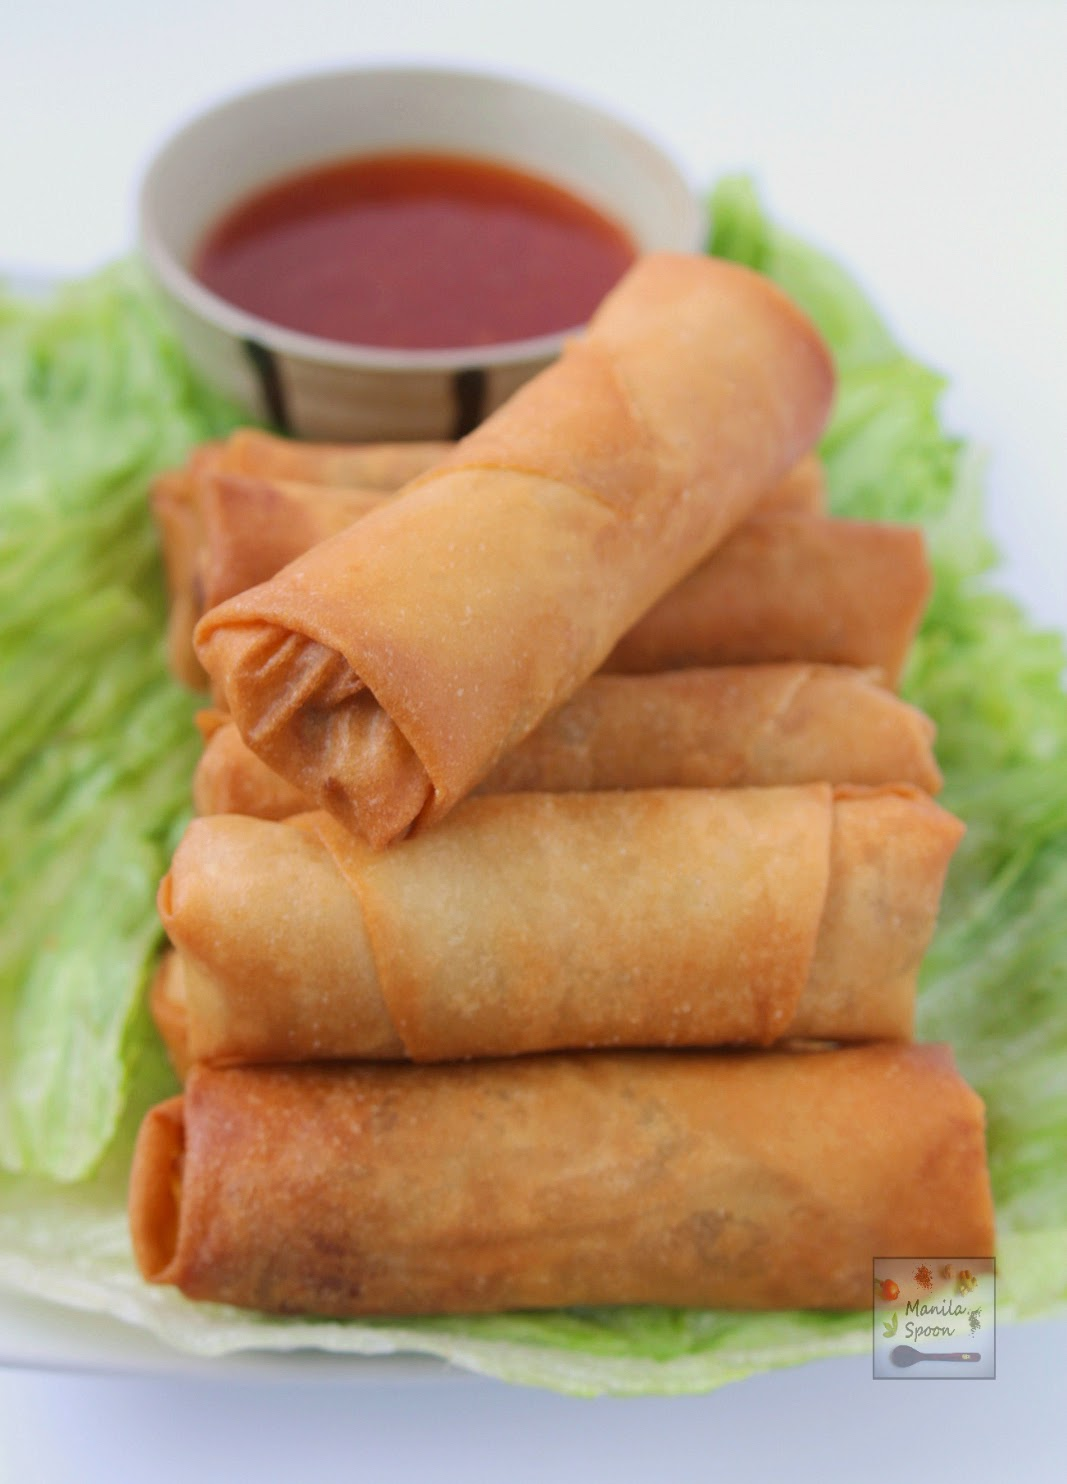 These crunchy and delicious spring rolls (Lumpia) are the perfect appetizers for any party and great for snacking, too. These can be made fully vegetarian or a little meat may be added, too. #easy #lumpia #vegetarian #appetizers #asian